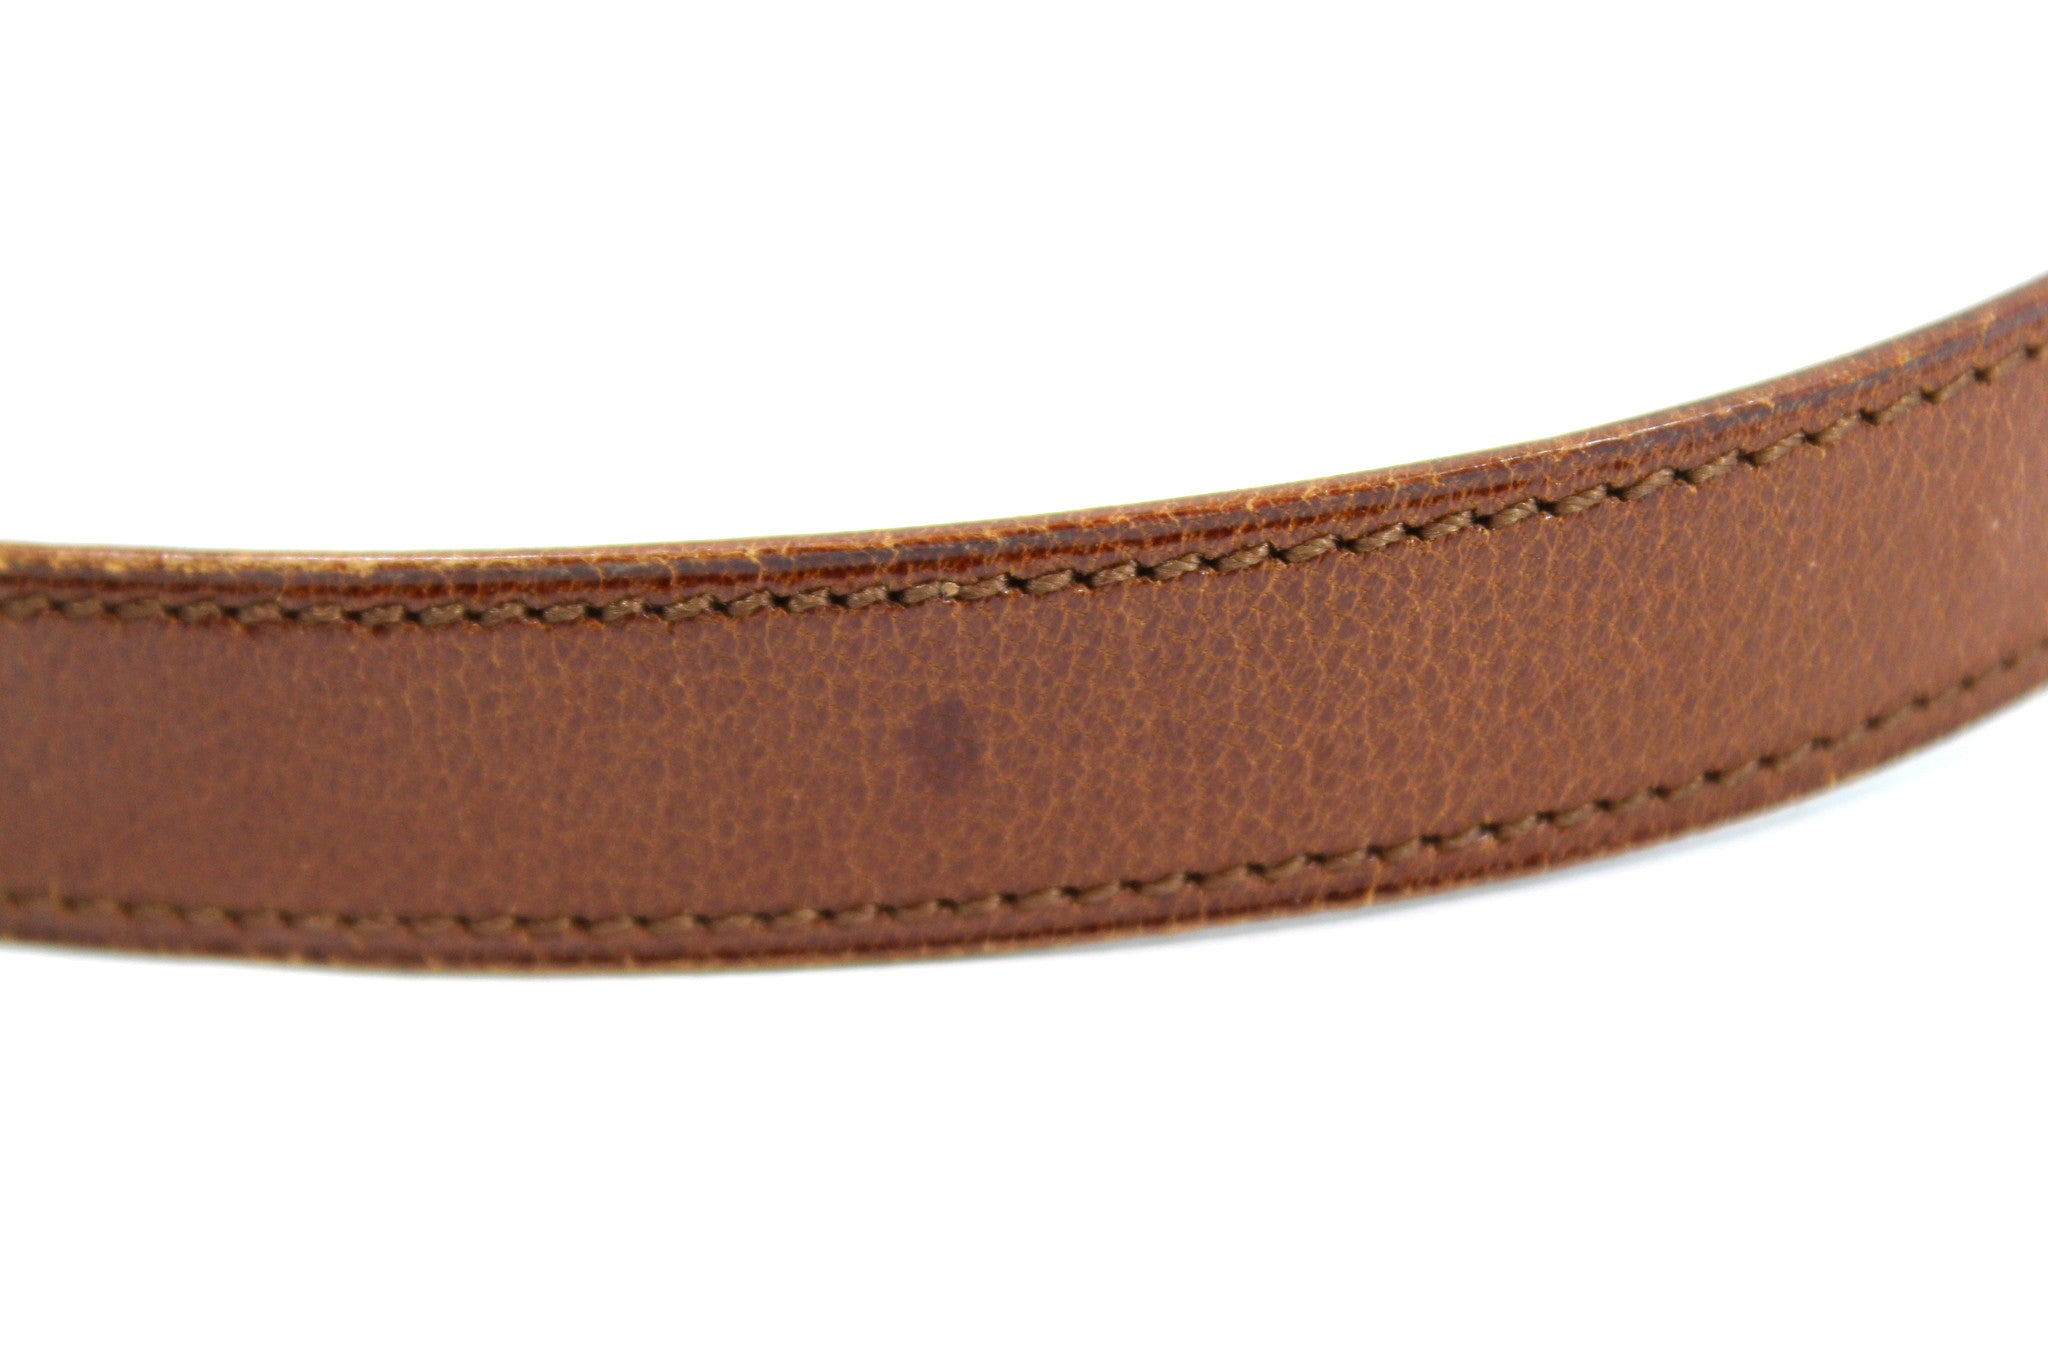 ~done~ Hermes Thin Brown Leather Belt w/ Gold Logo Buckle - Encore Consignment - 6